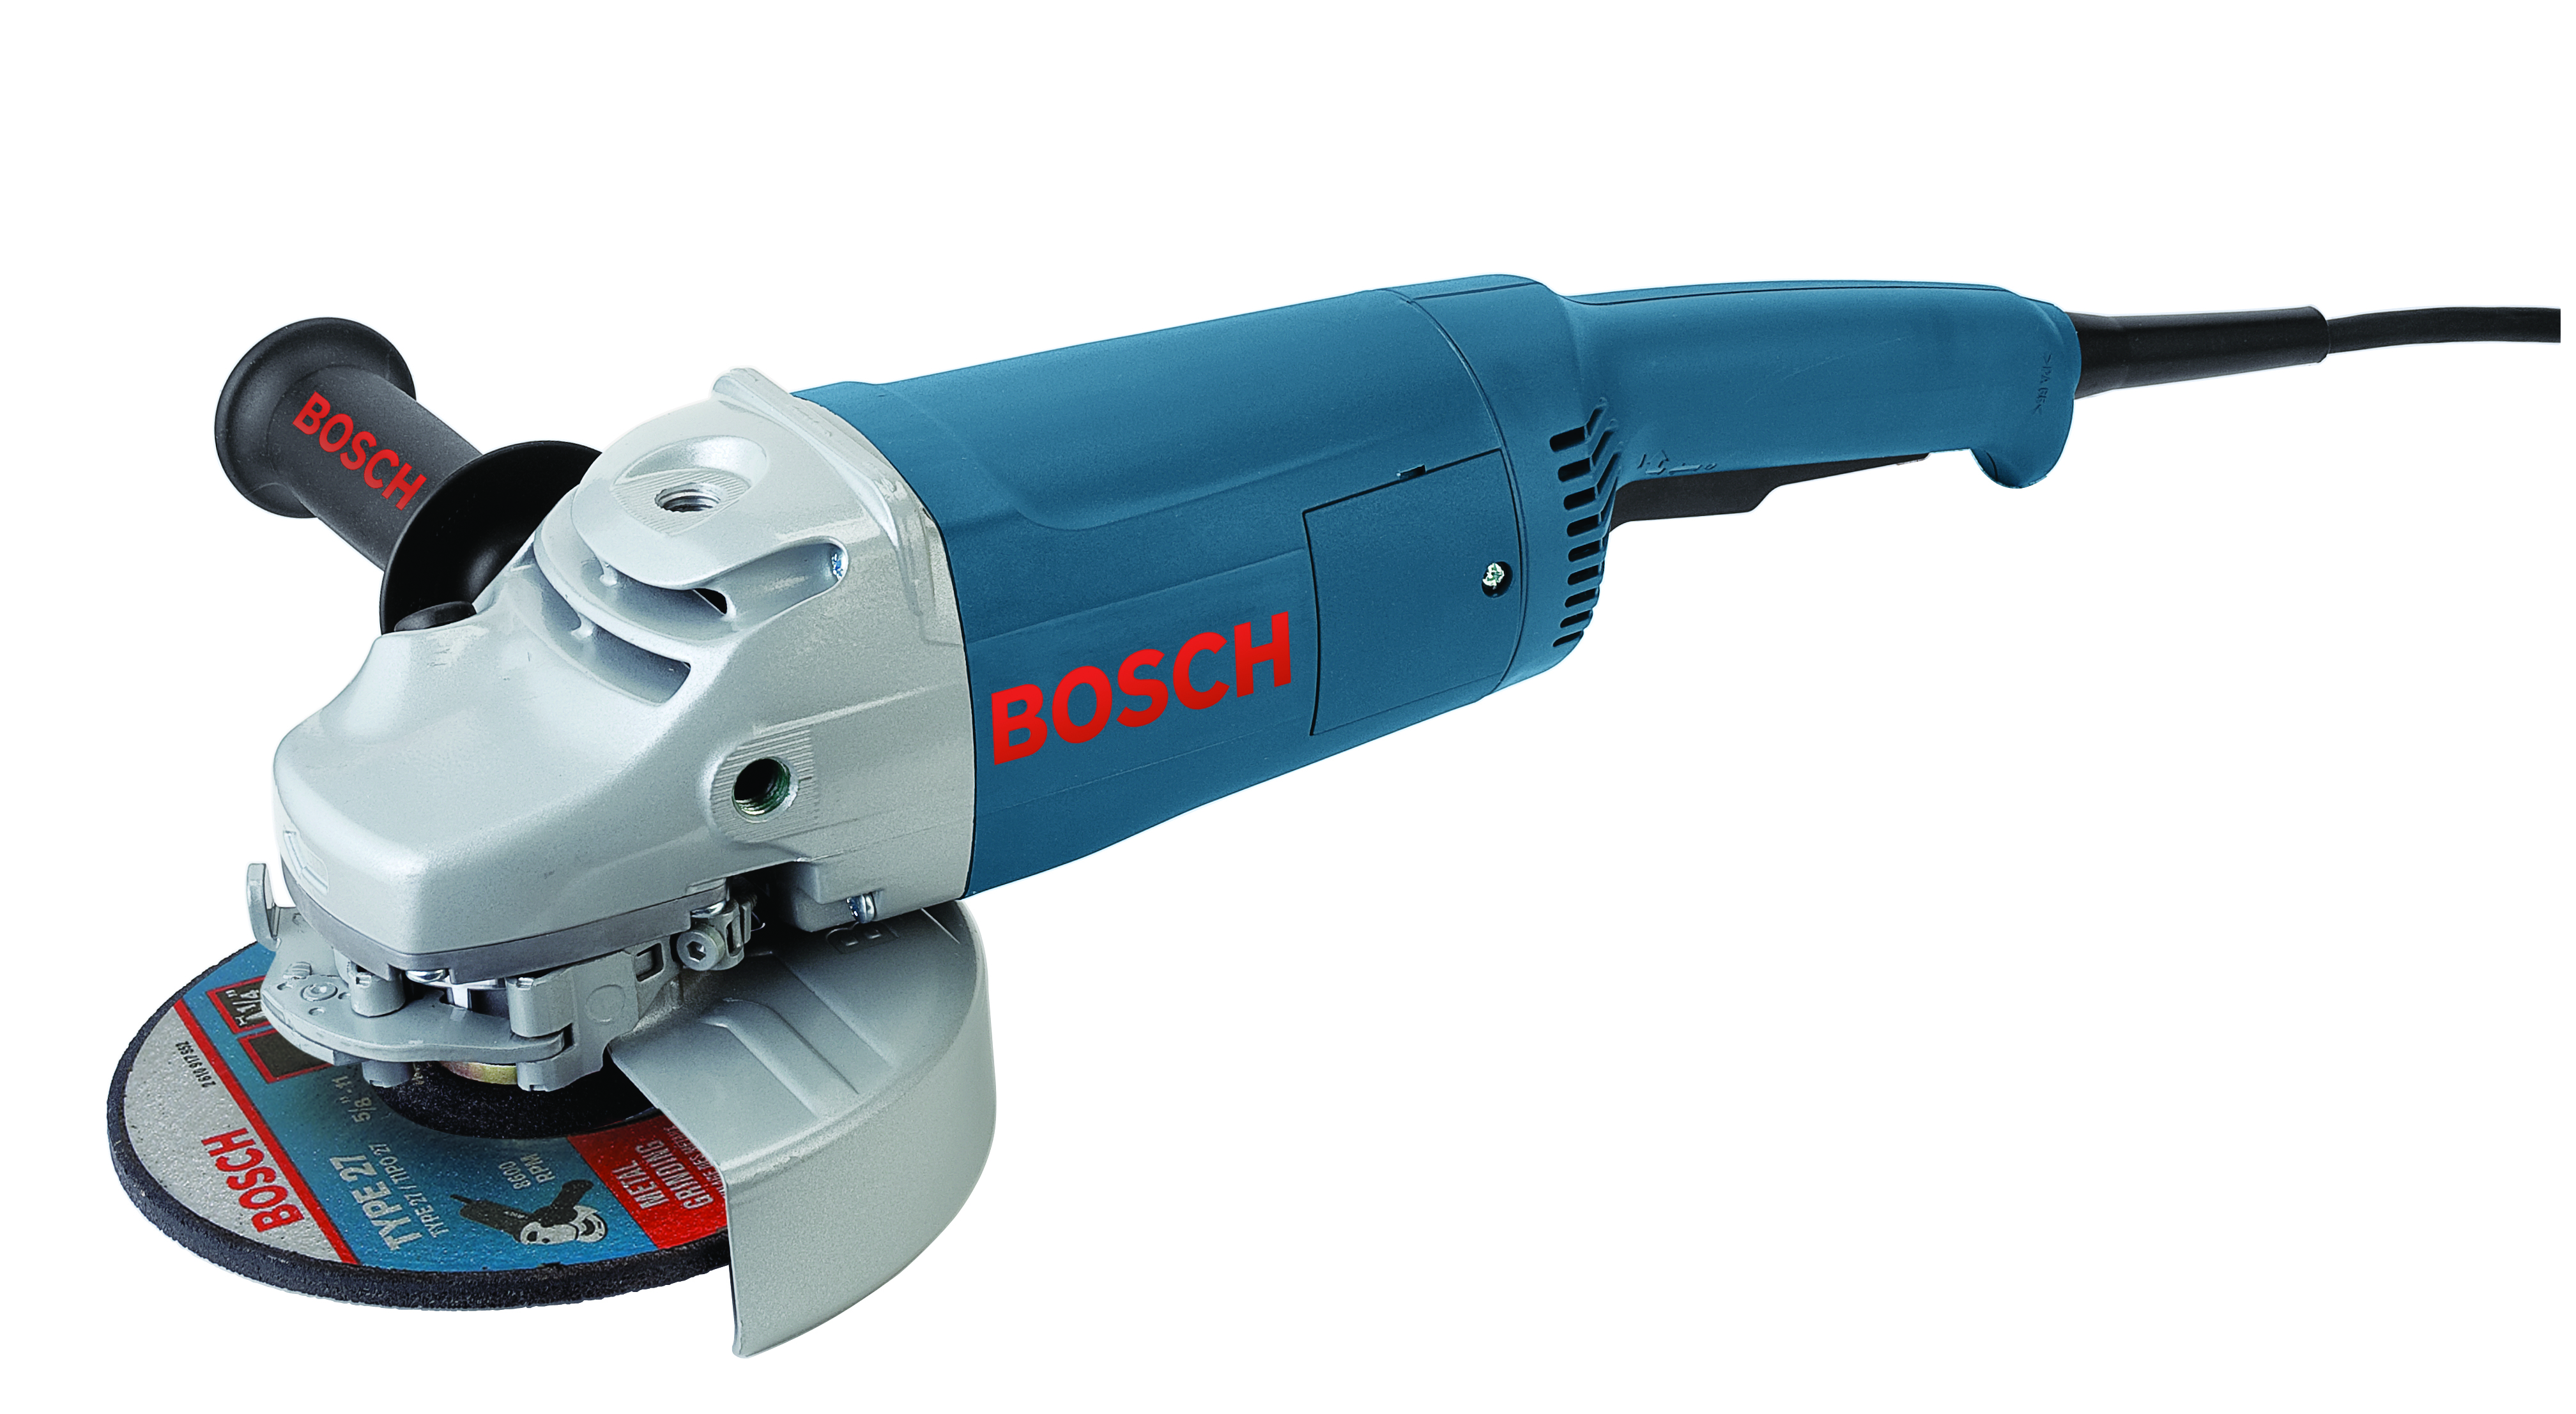 angle grinder machine. new bosch large angle grinder takes the weight out of power and dependability machine m